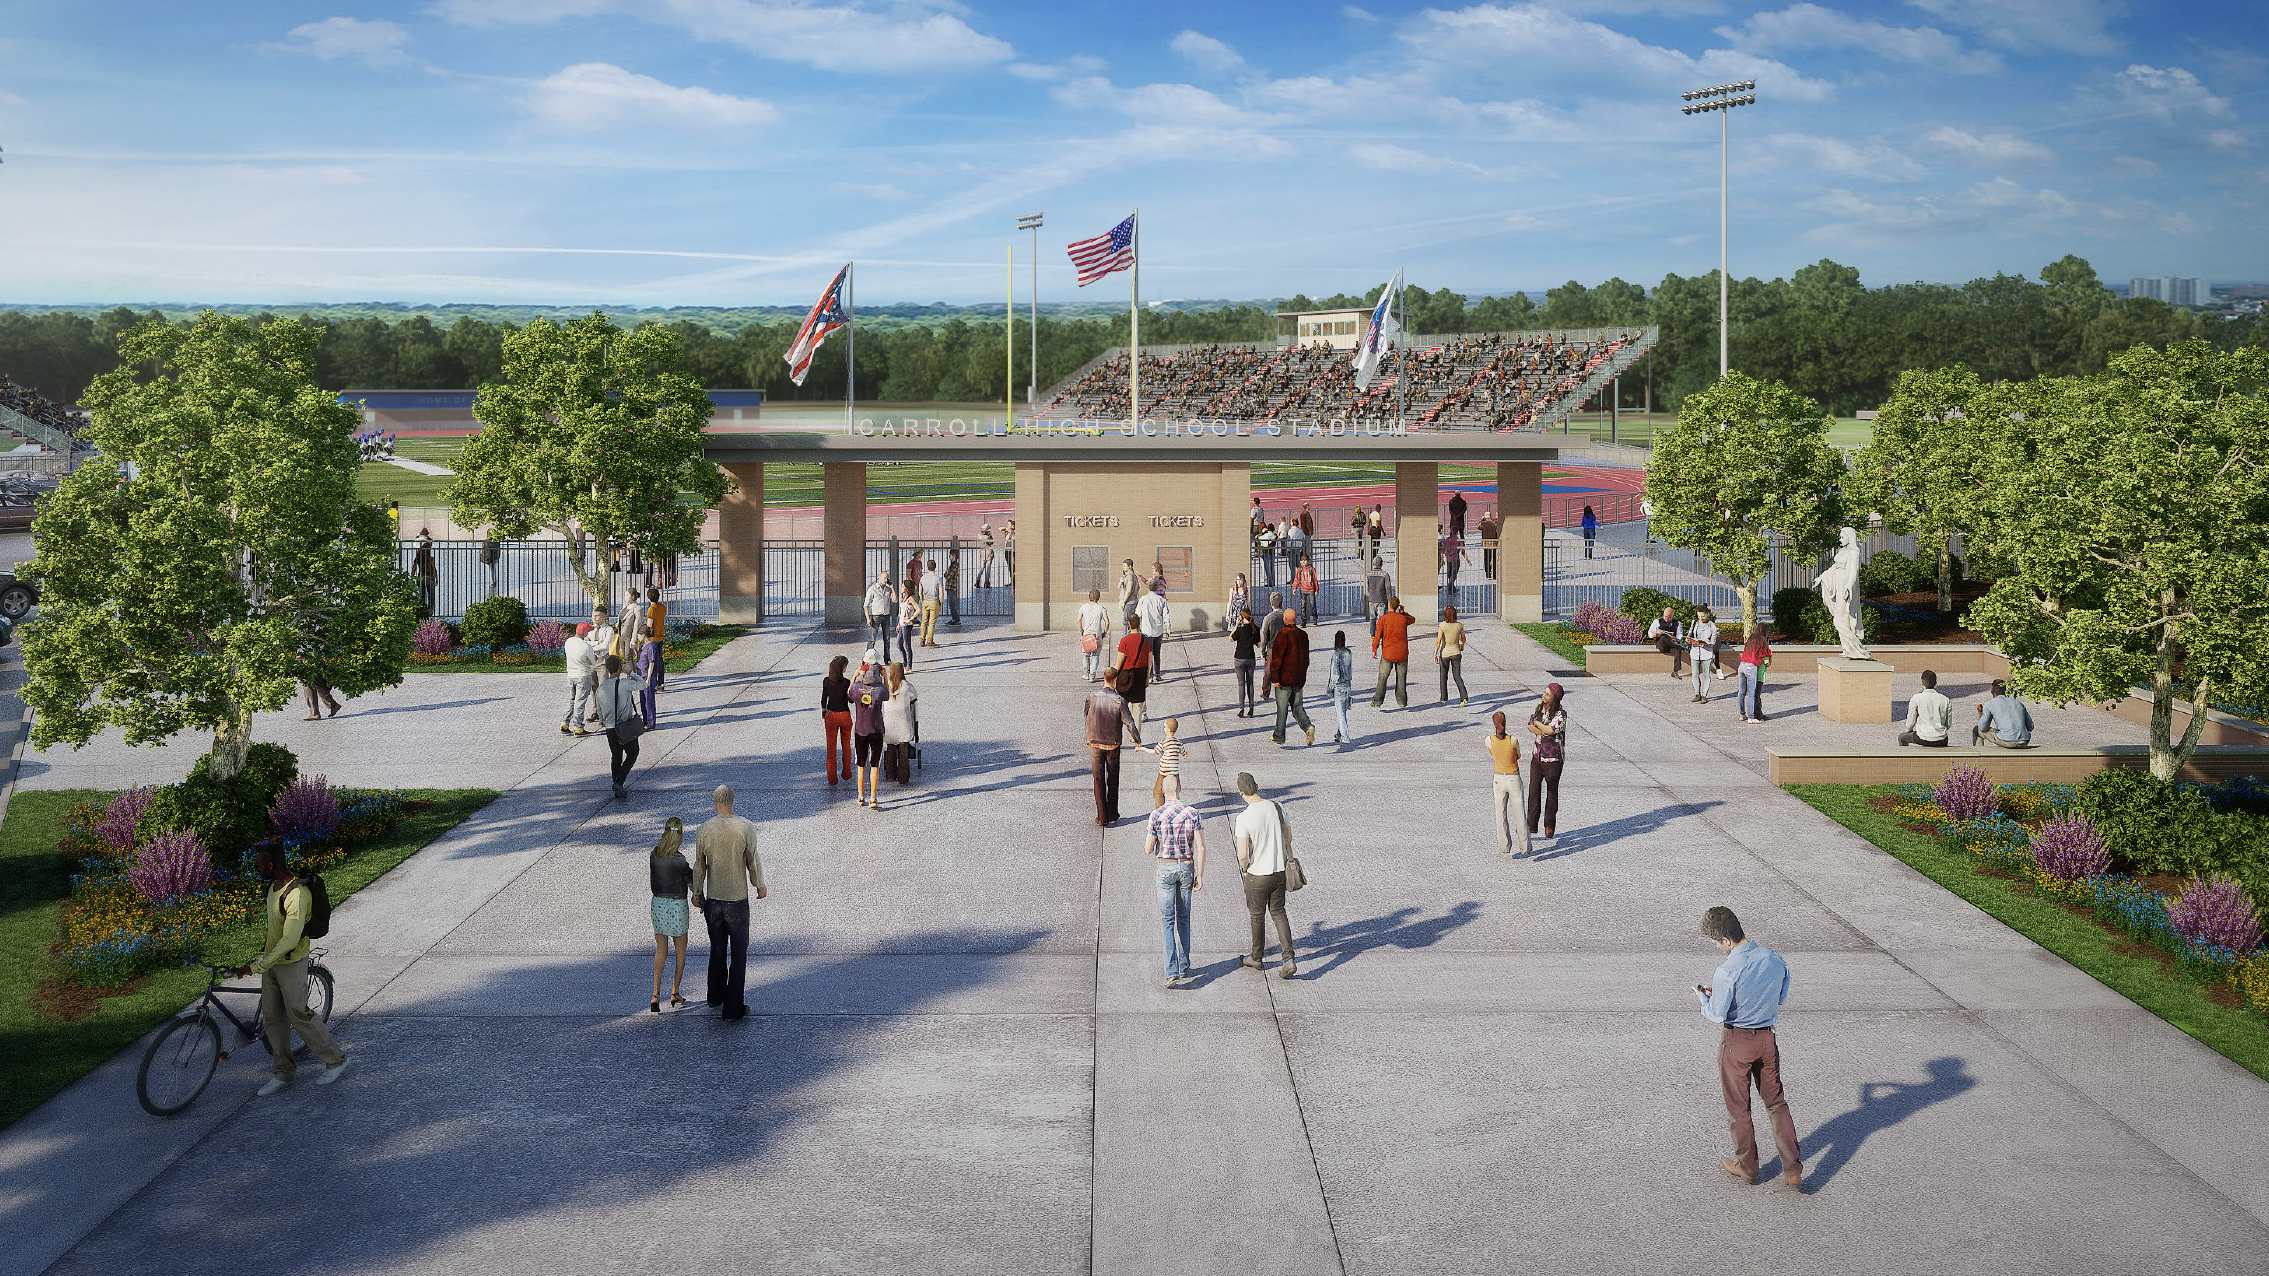 Patriot Stadium: Artist's Rendering